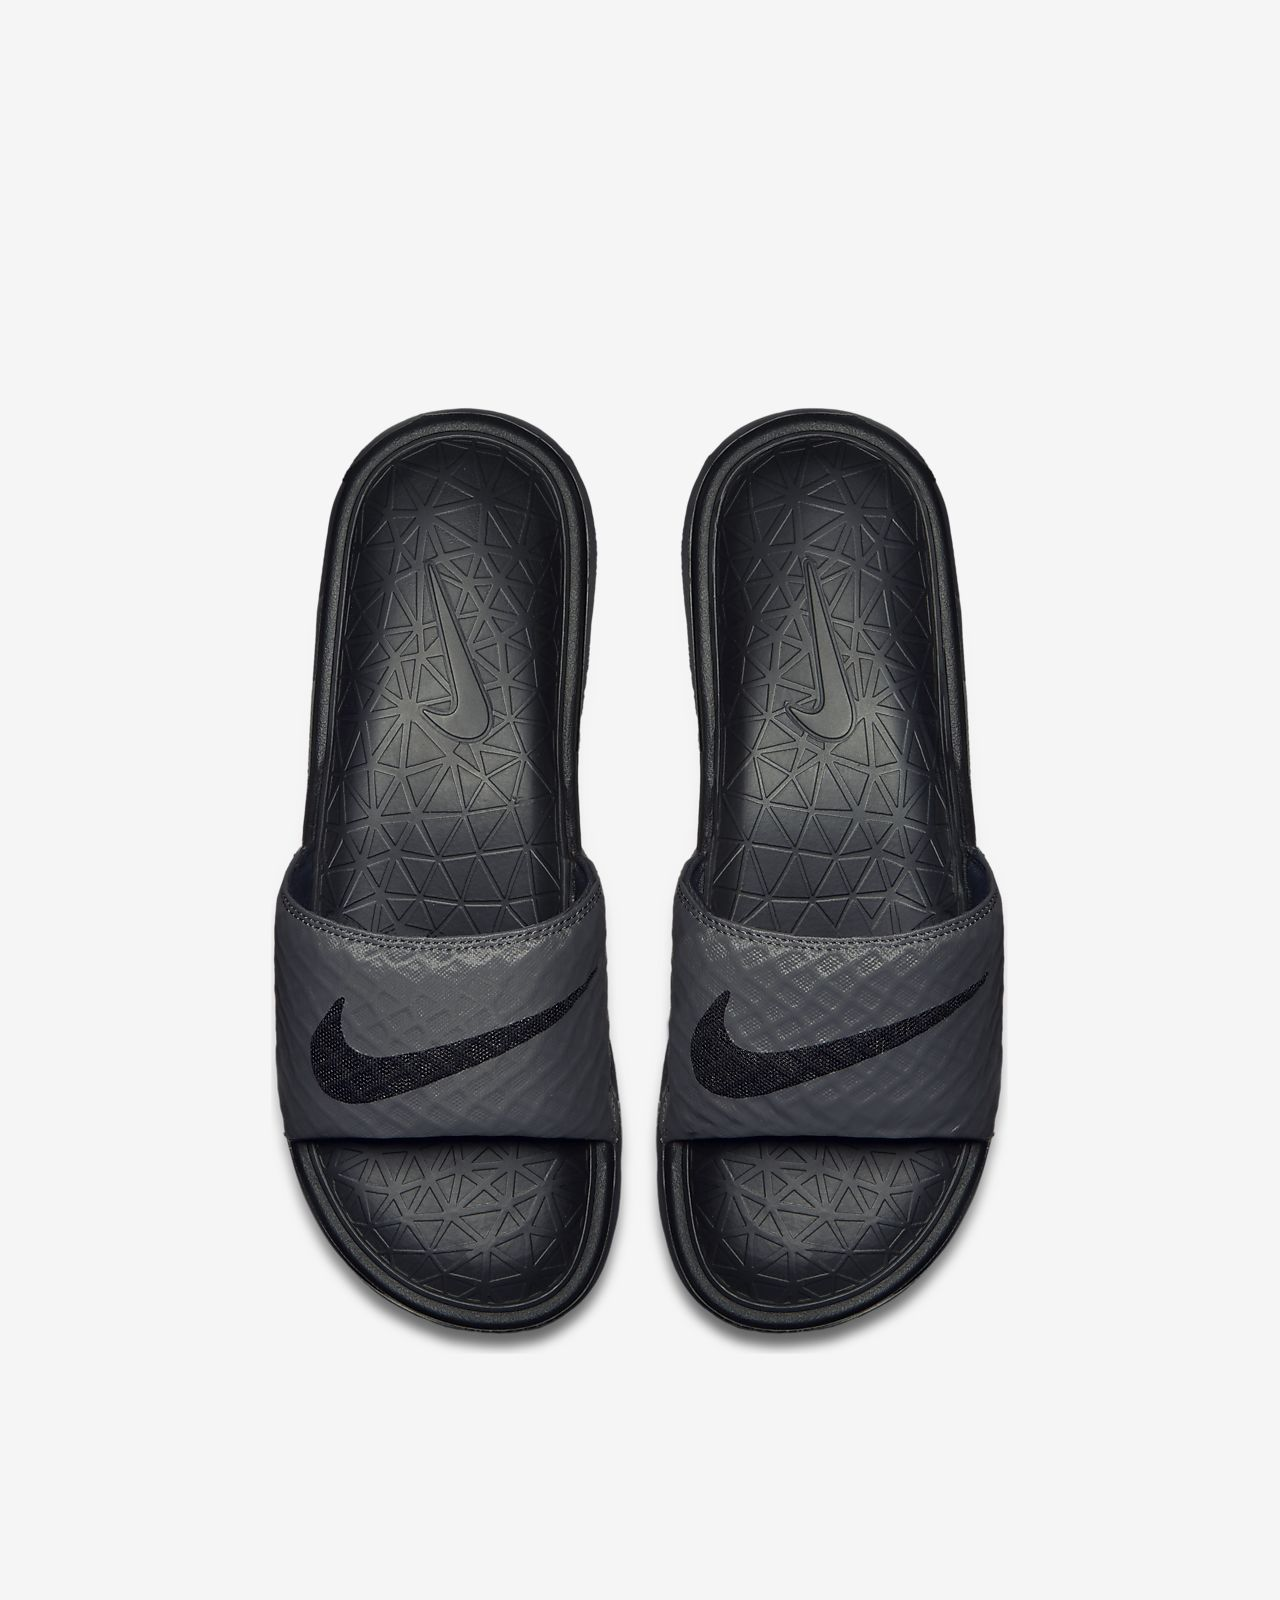 buy popular 276a4 68795 ... Nike Benassi Solarsoft 2 Herren-Badeslipper